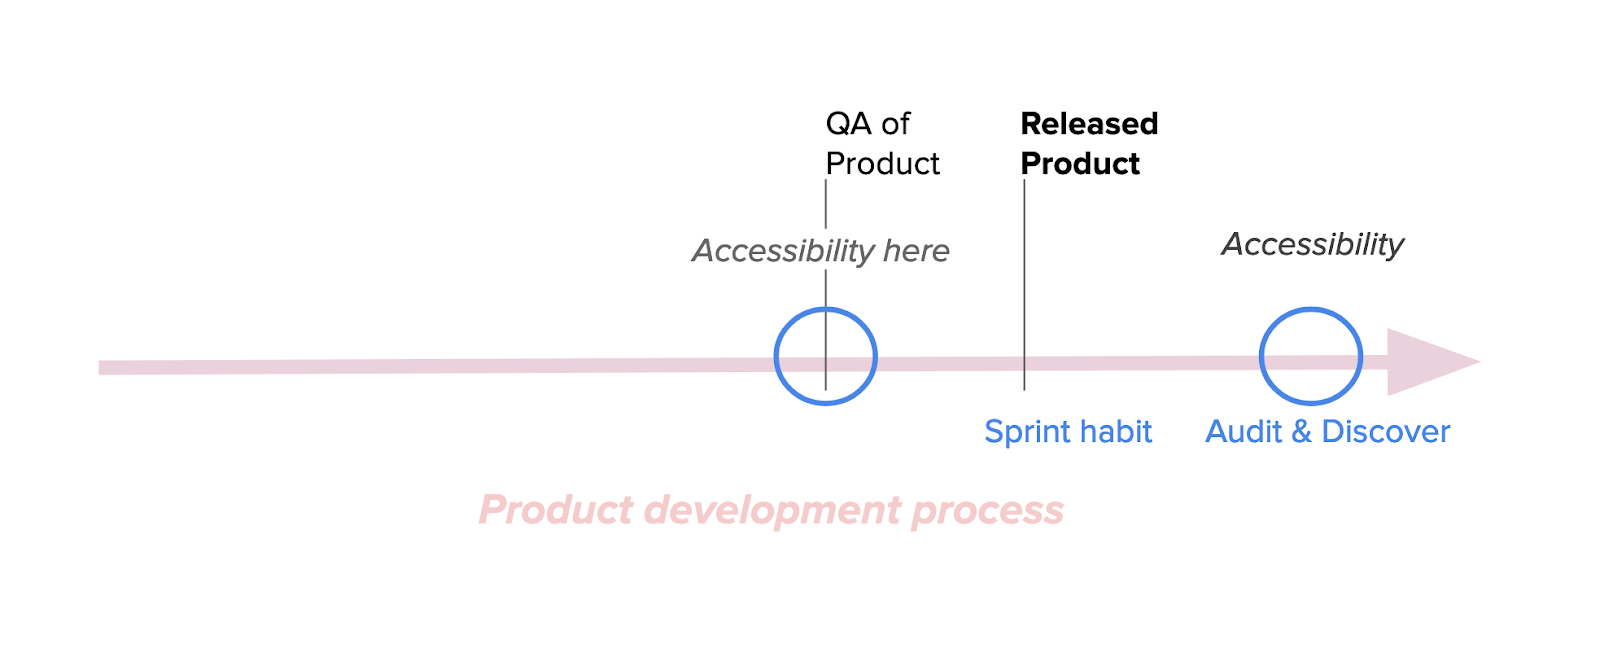 Mature product development process flow chart, showing where Accessibility starts